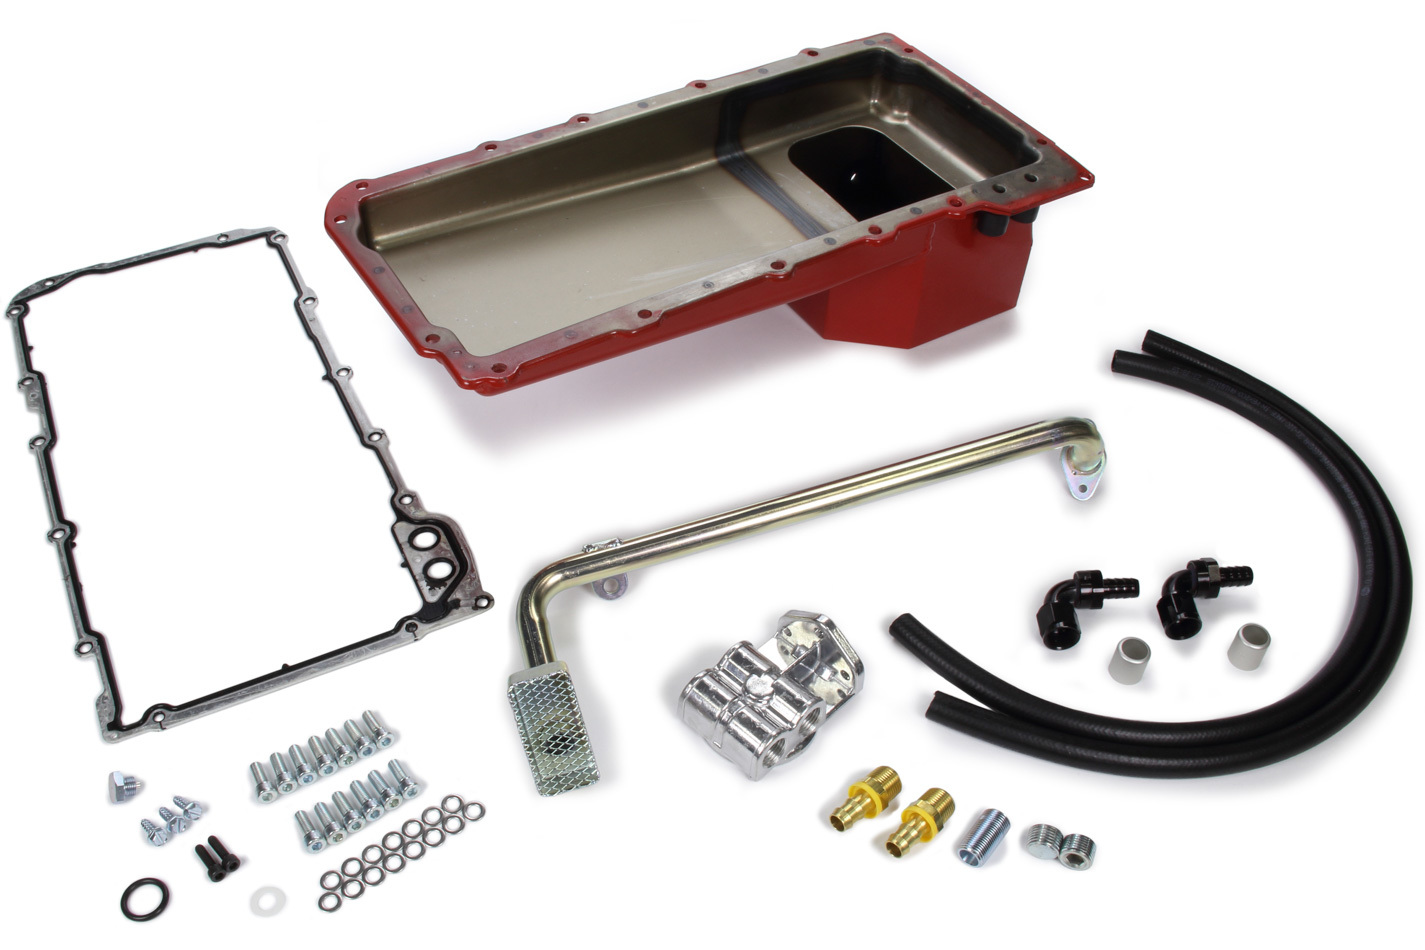 Trans Dapt 0176 Engine Oil Pan Kit, Fabricated, Rear Sump, 5 qt, 6 in Deep, Single Filter, Horizontal Port, Gasket/Hardware/Oil Filter Relocation System/Pickup, Steel, Red Painted, GM LS-Series, GM F-Body 1967-69, Kit